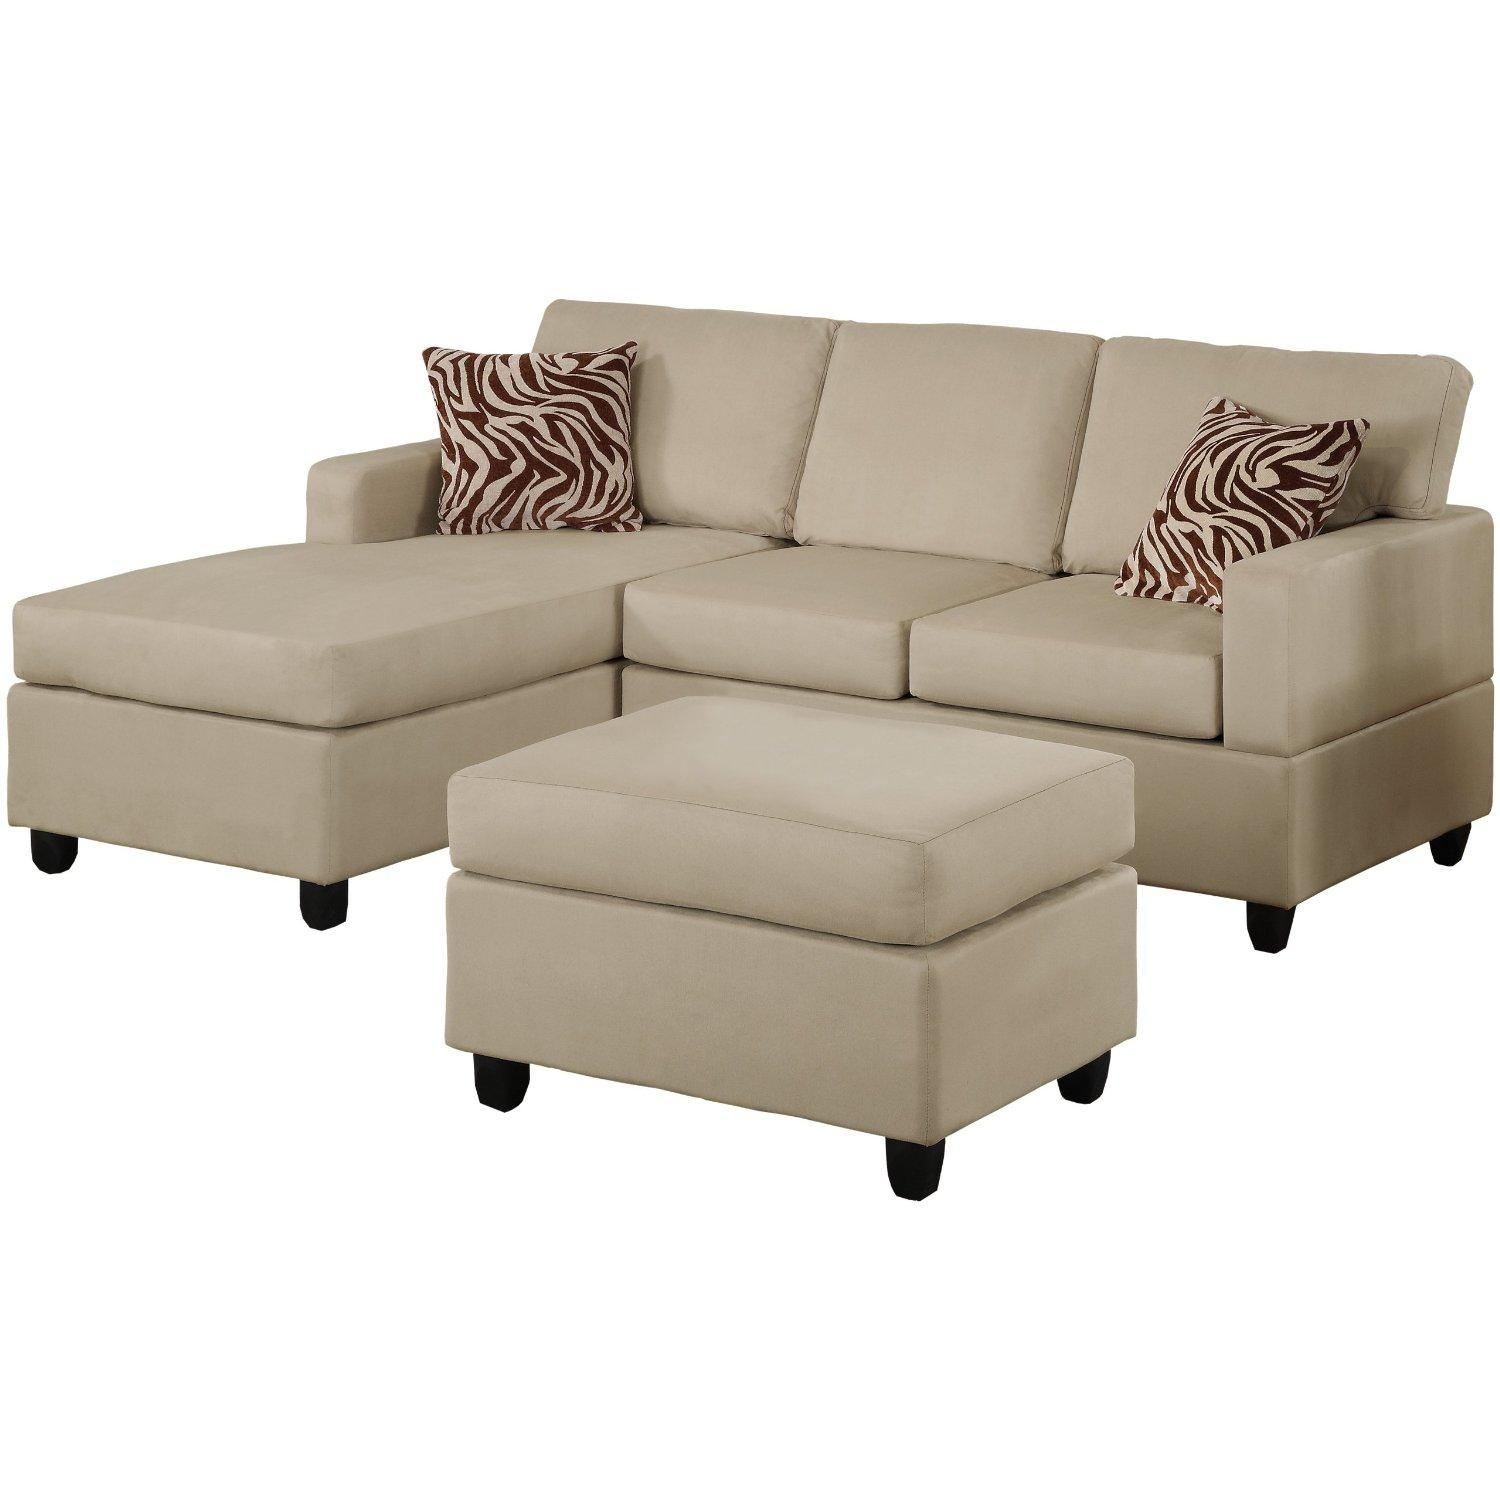 Furniture: Thomasville Sectional Sofas With Blends Classic Inside Thomasville Leather Sectionals (Image 9 of 20)